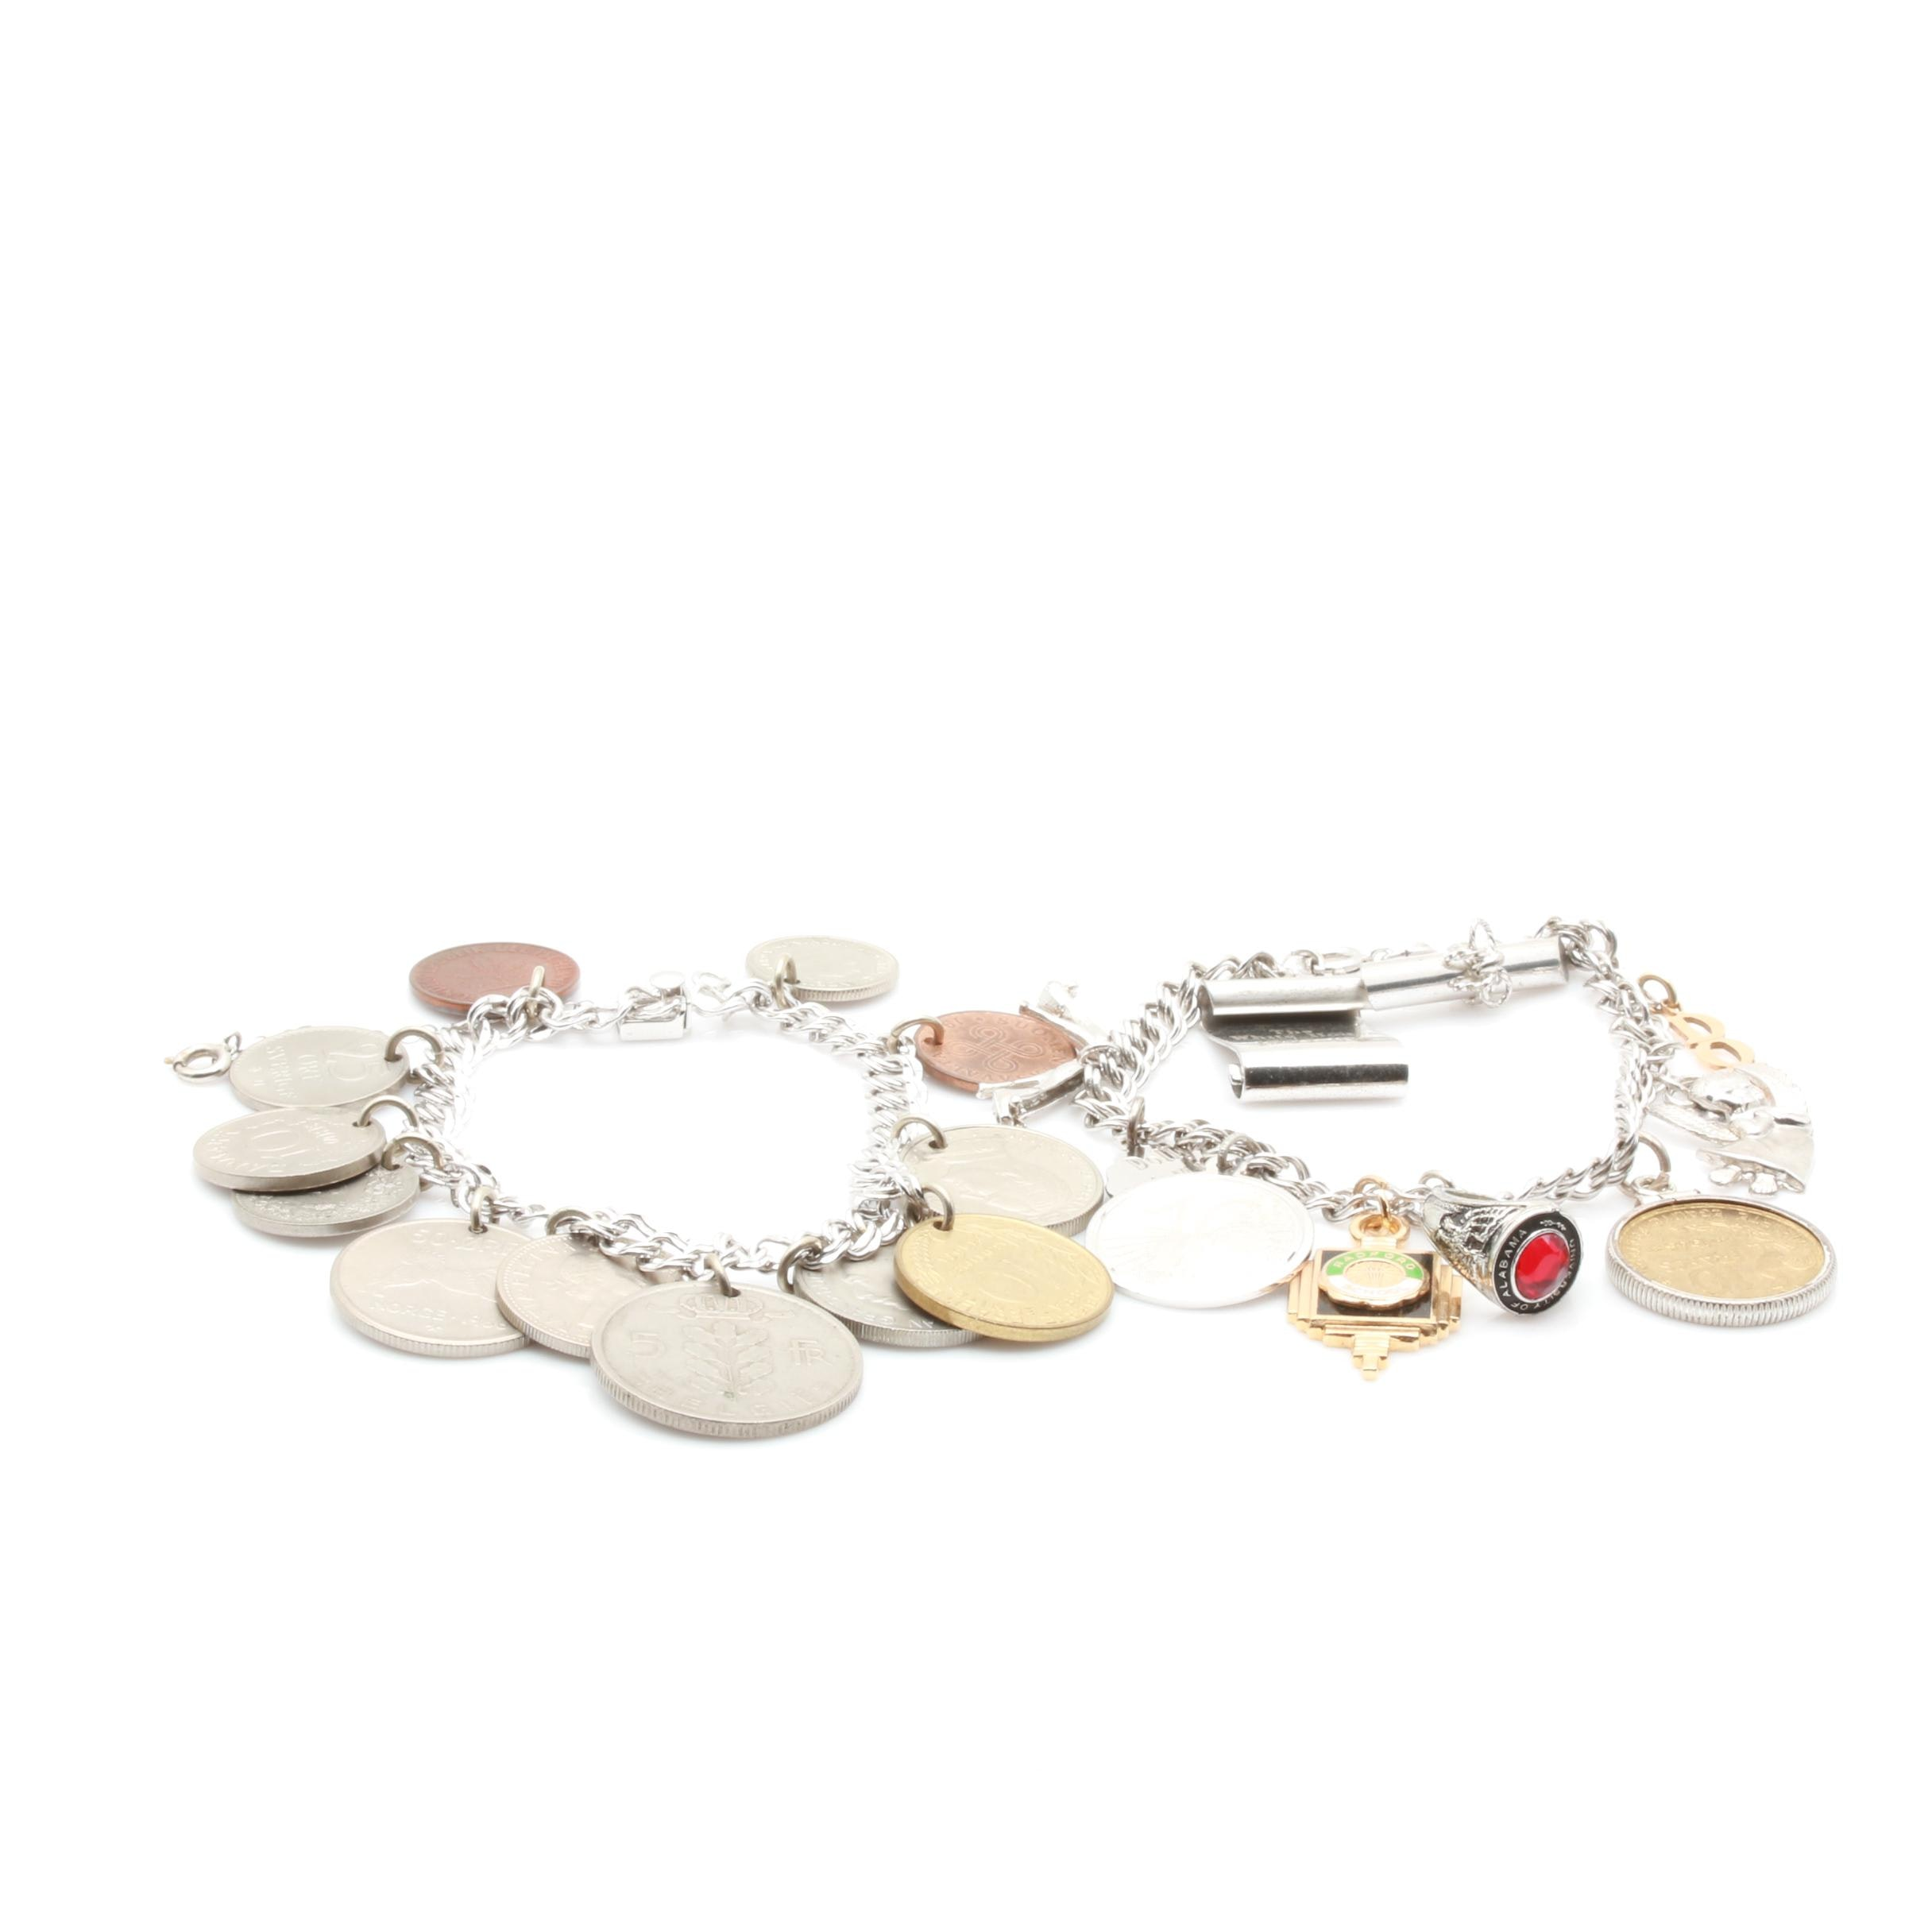 Sterling Silver Charm Bracelets Including 14K Yellow Gold, Enamel, and Coins